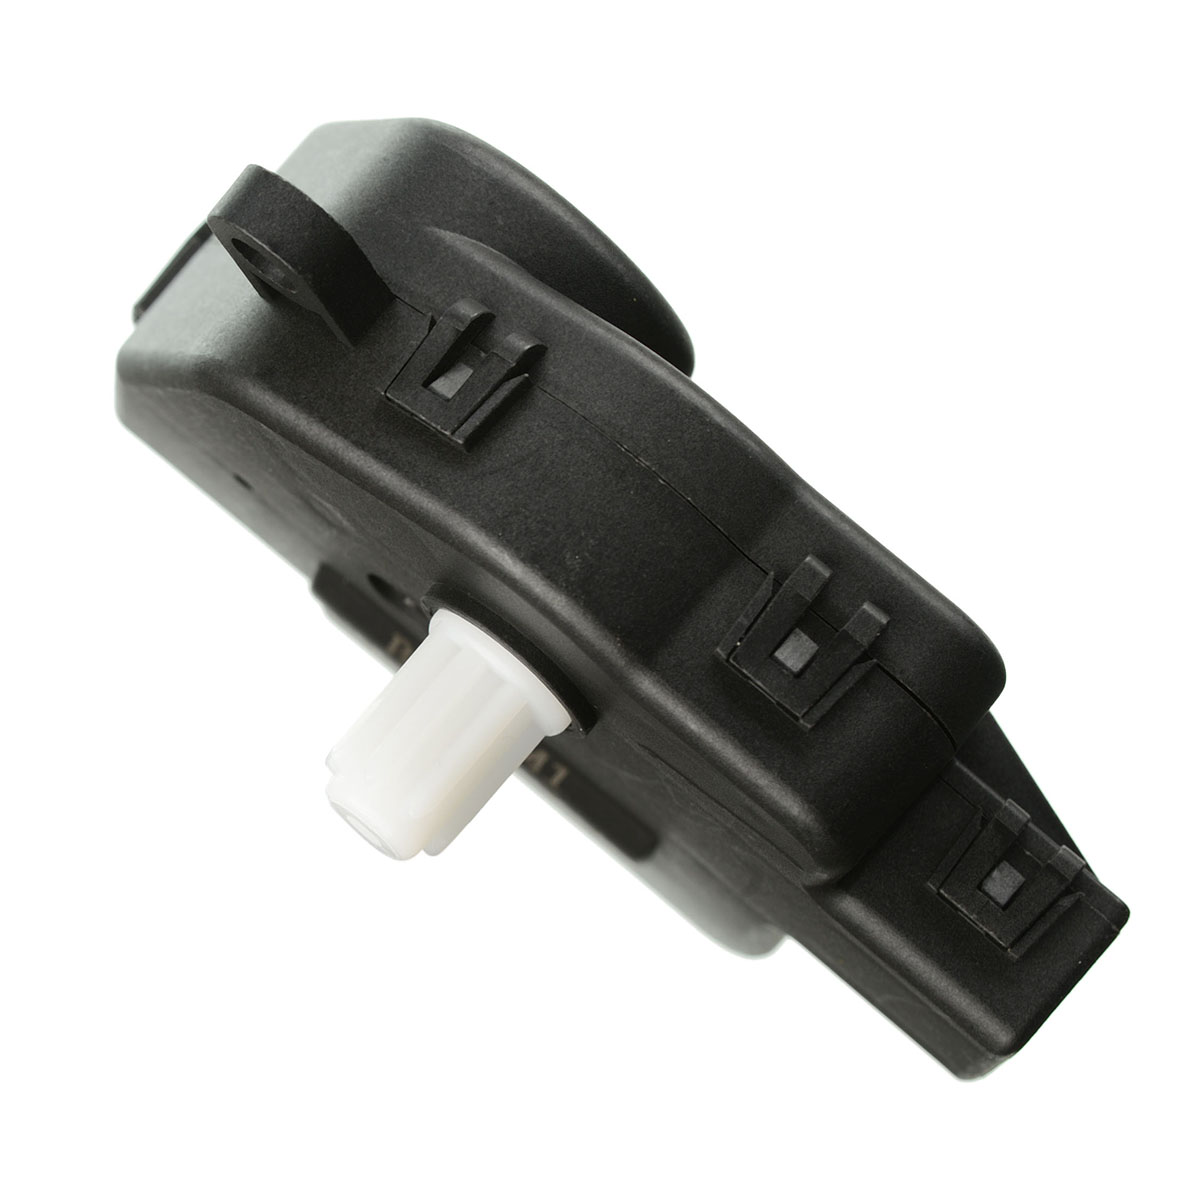 US $529 99 |HVAC AC Heater Blend Door Actuator Fit Ford C Max 2013 2014  2015 2016 2017 2018 F 150 Lincoln Mercury-in Heater Parts from Automobiles  &